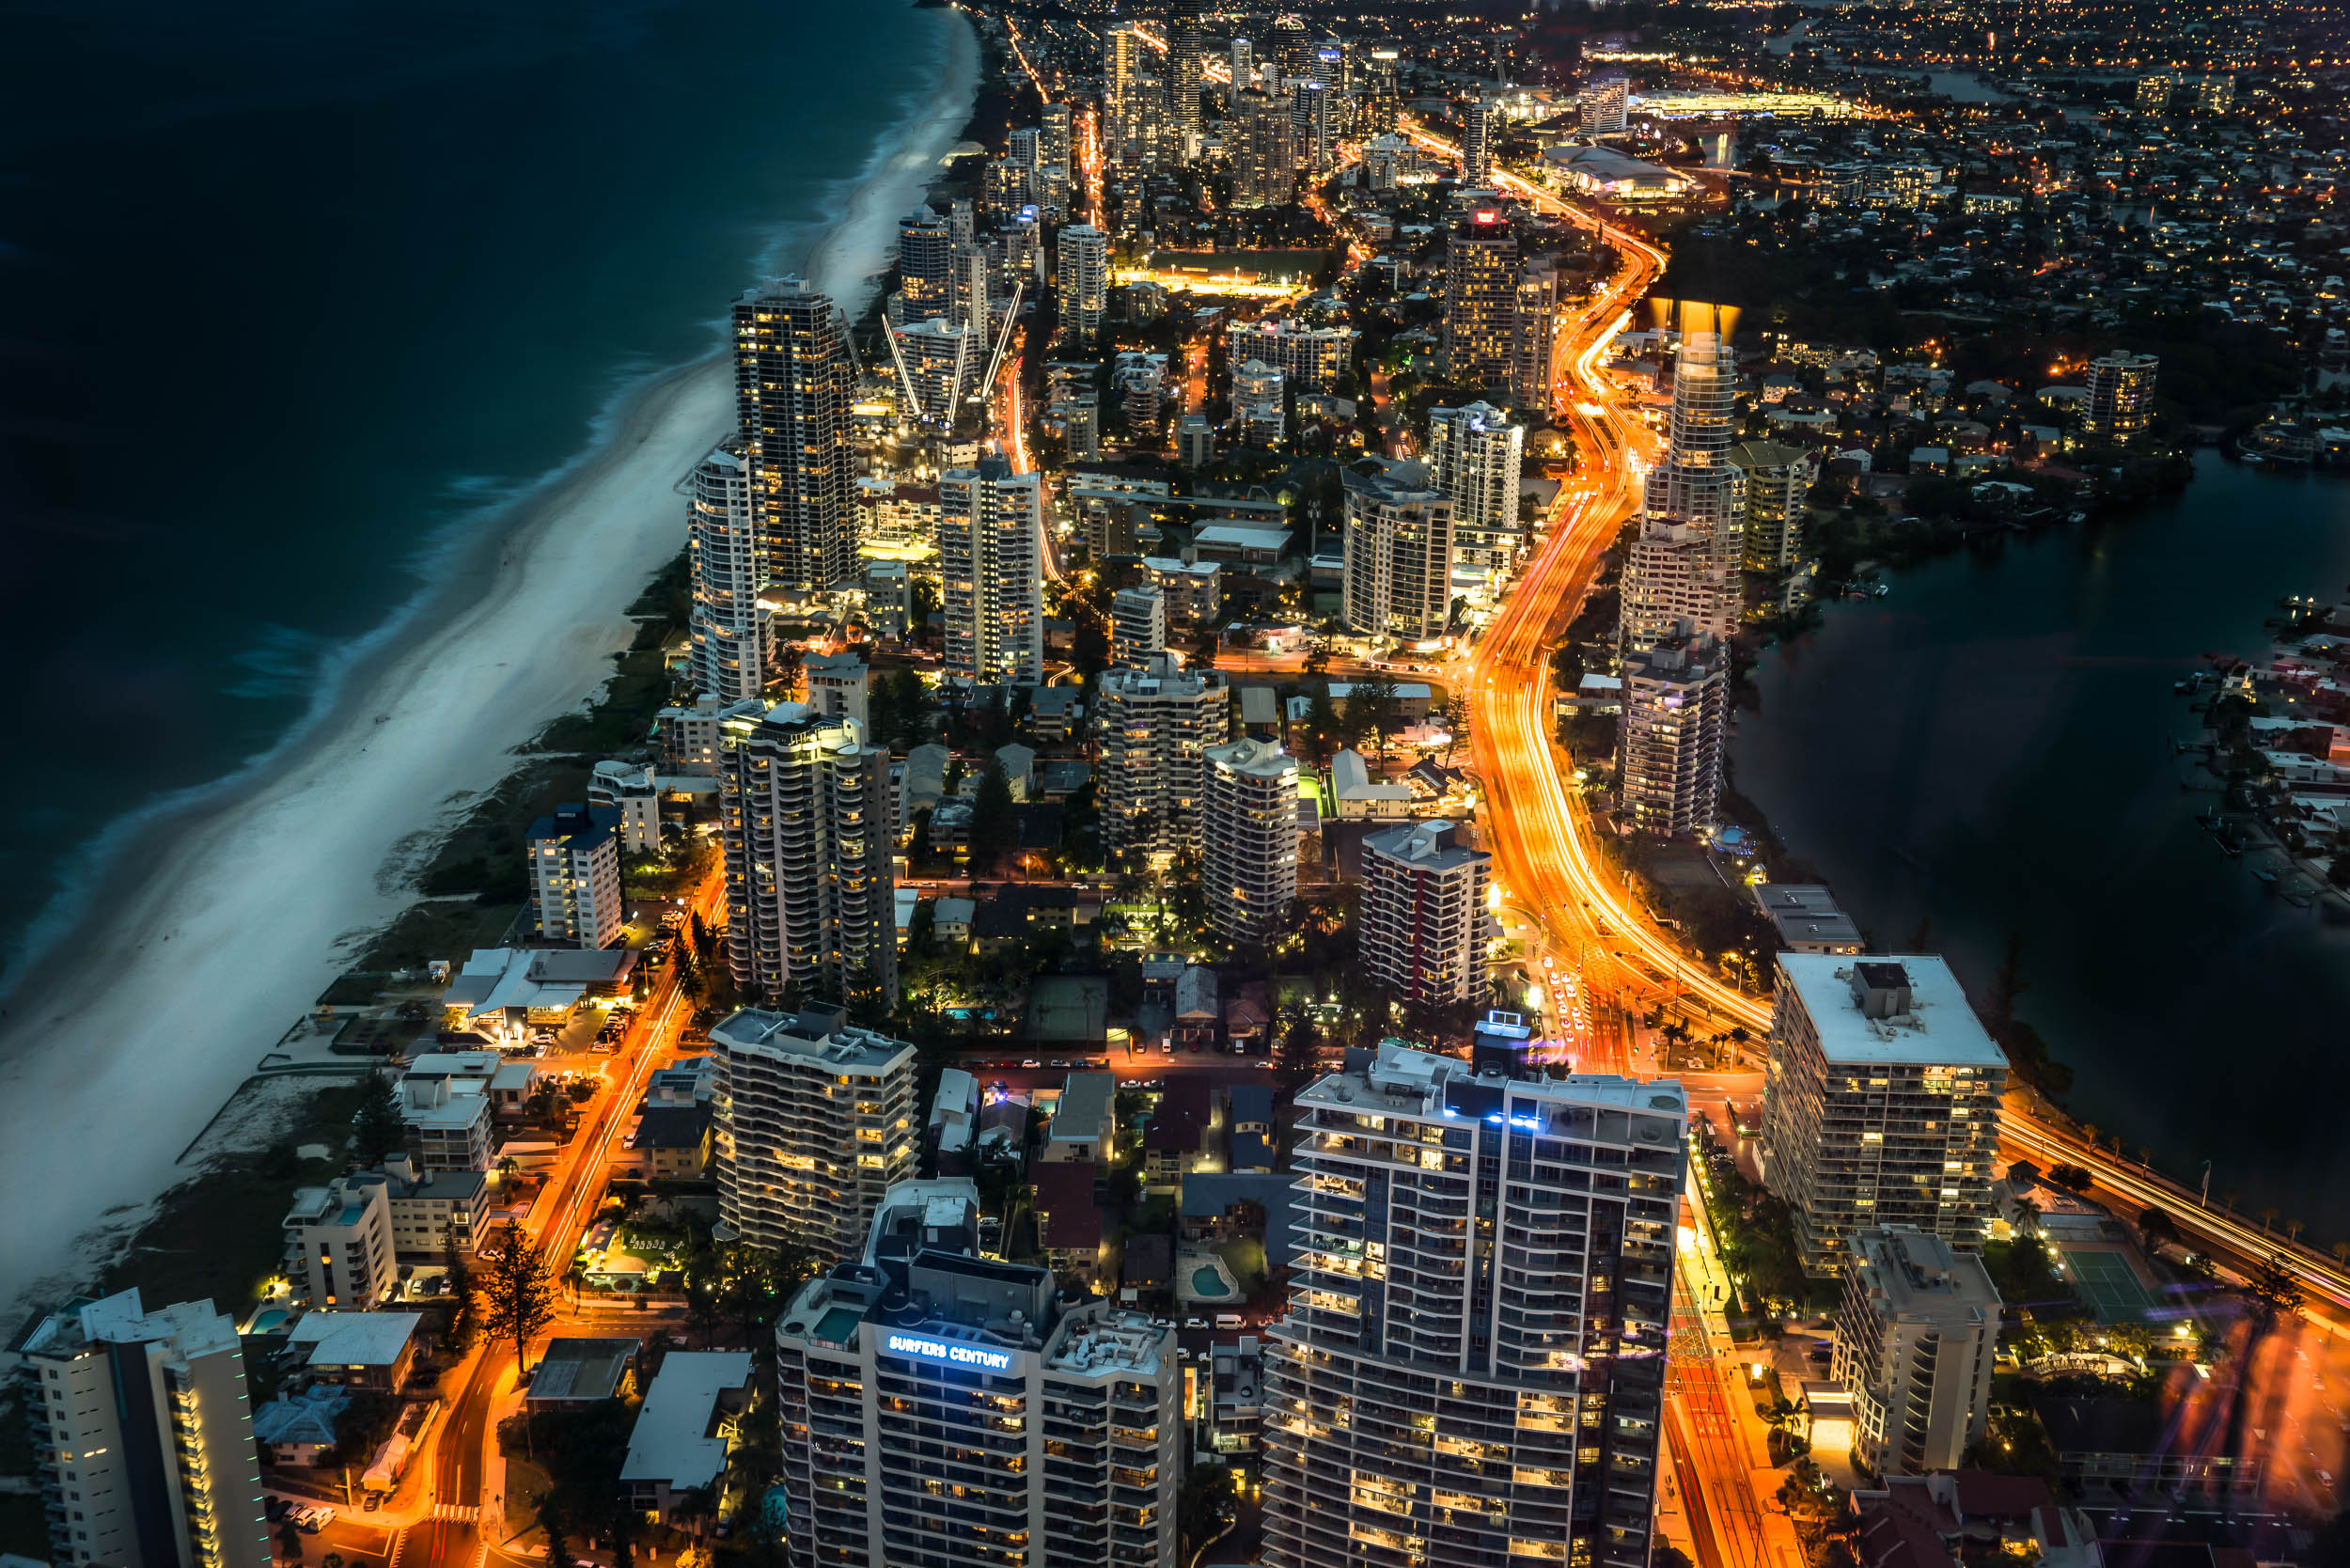 Gold Coast Q1 Looking South.jpg